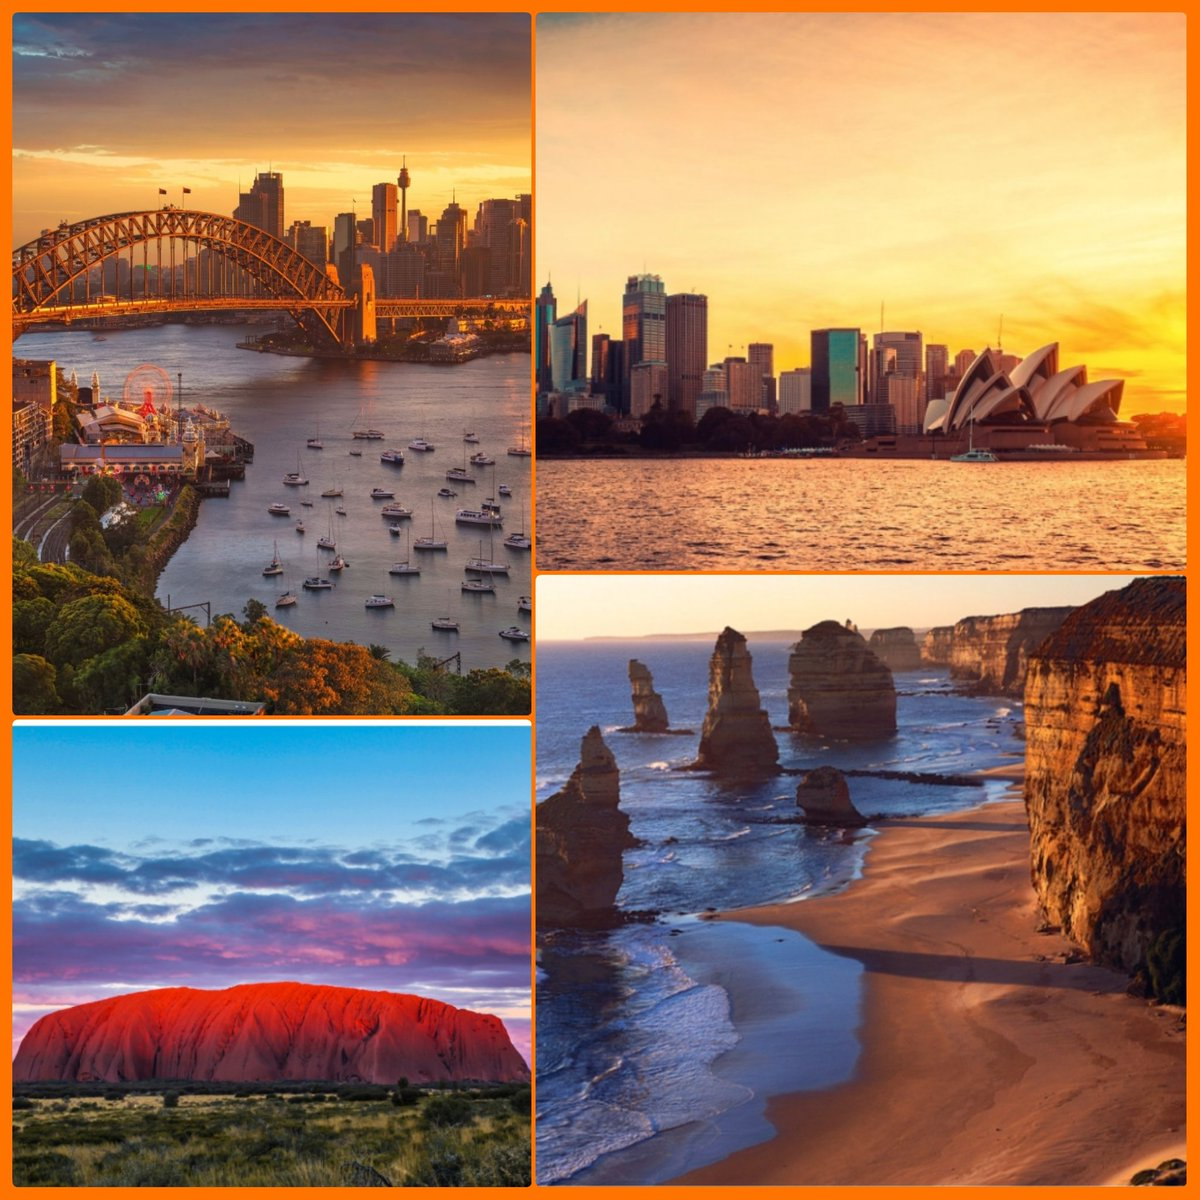 #maymotivation #Day29 I always wanted to visit #thelanddownunder #Australia # # pic.twitter.com/Wxy3fpQ9JV